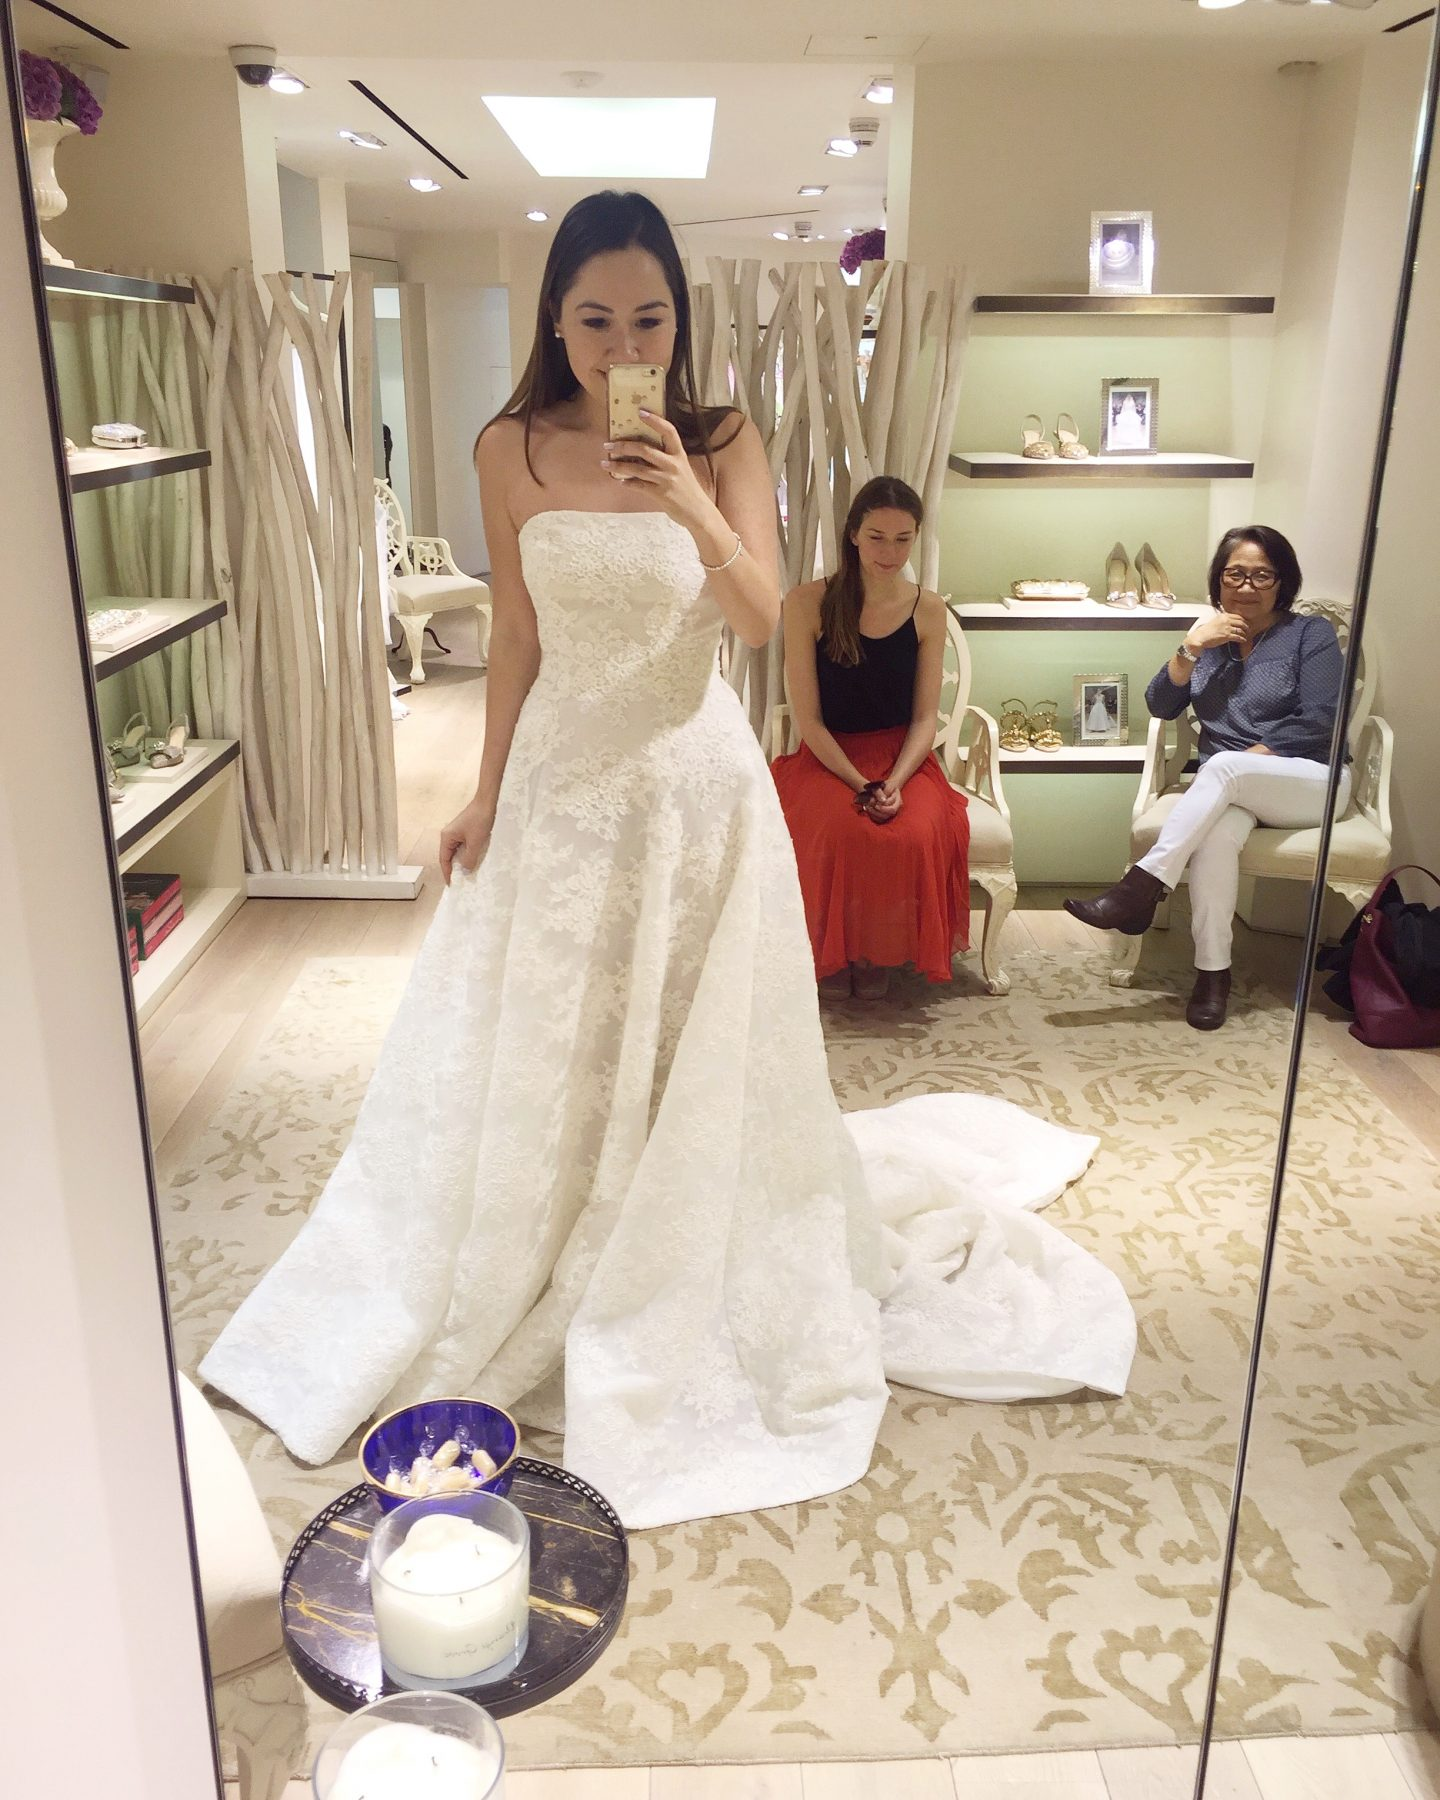 df58b727e3 Wedding Dress Shopping Chronicles - Part 2! - Chase Amie